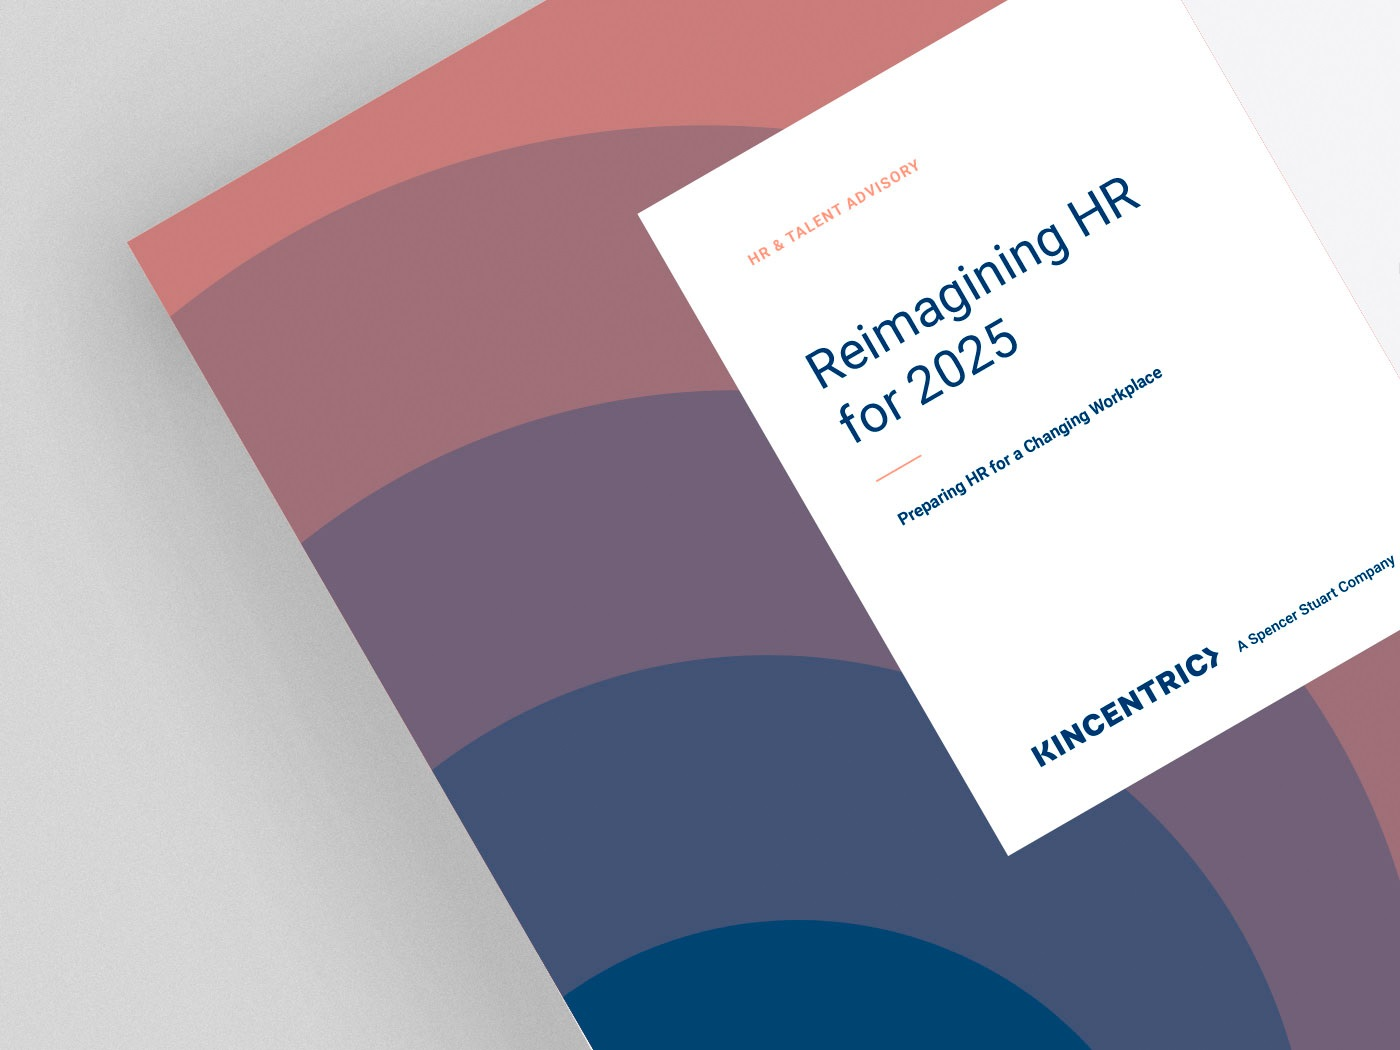 Reimagining HR for 2025